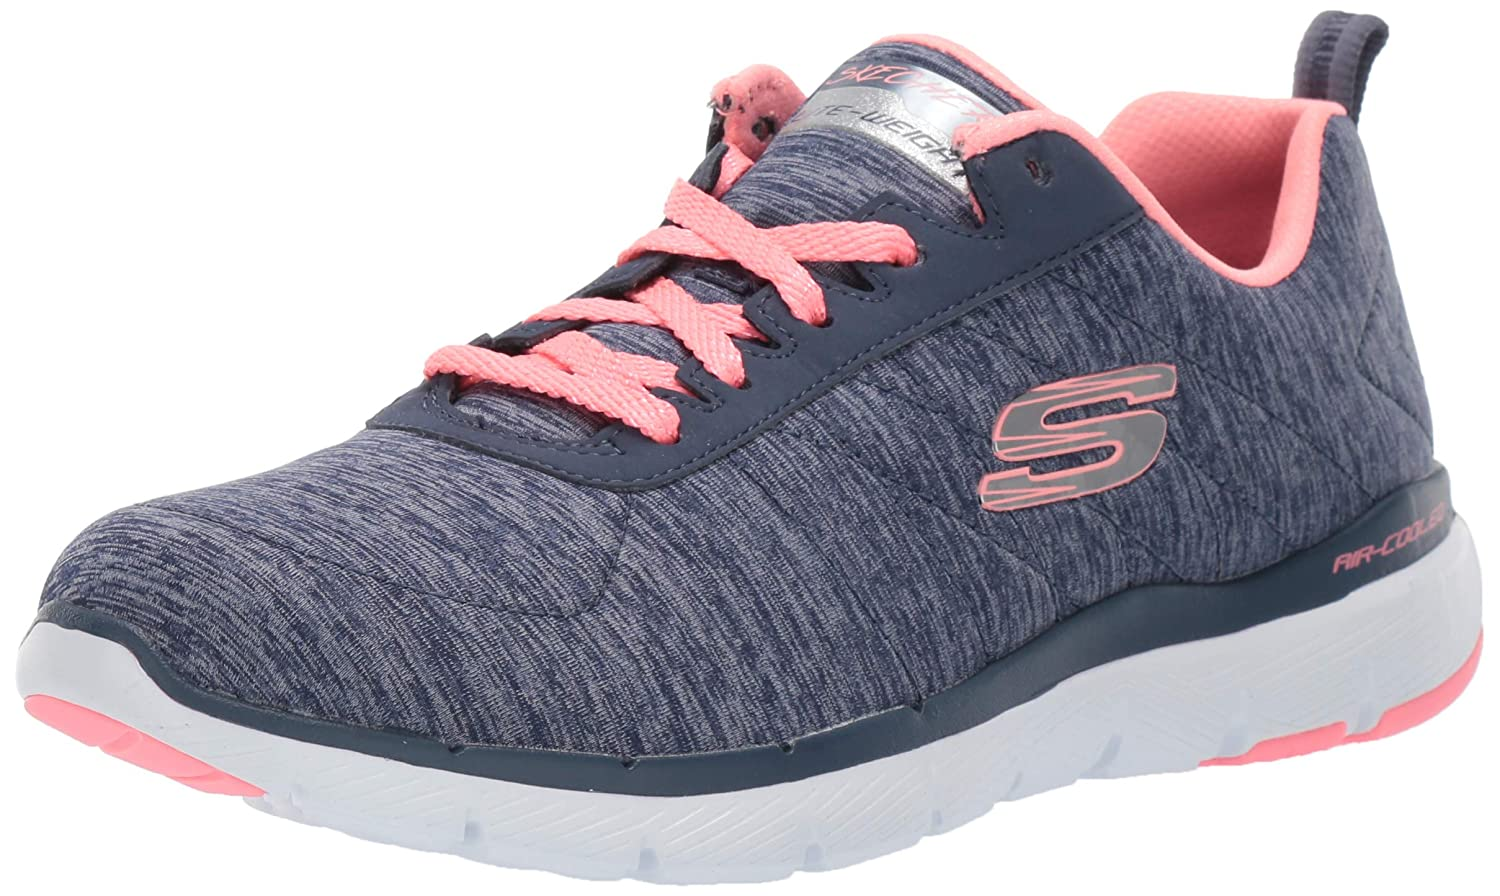 Skechers Damen Flex Appeal 3.0-insiders Turnschuhe